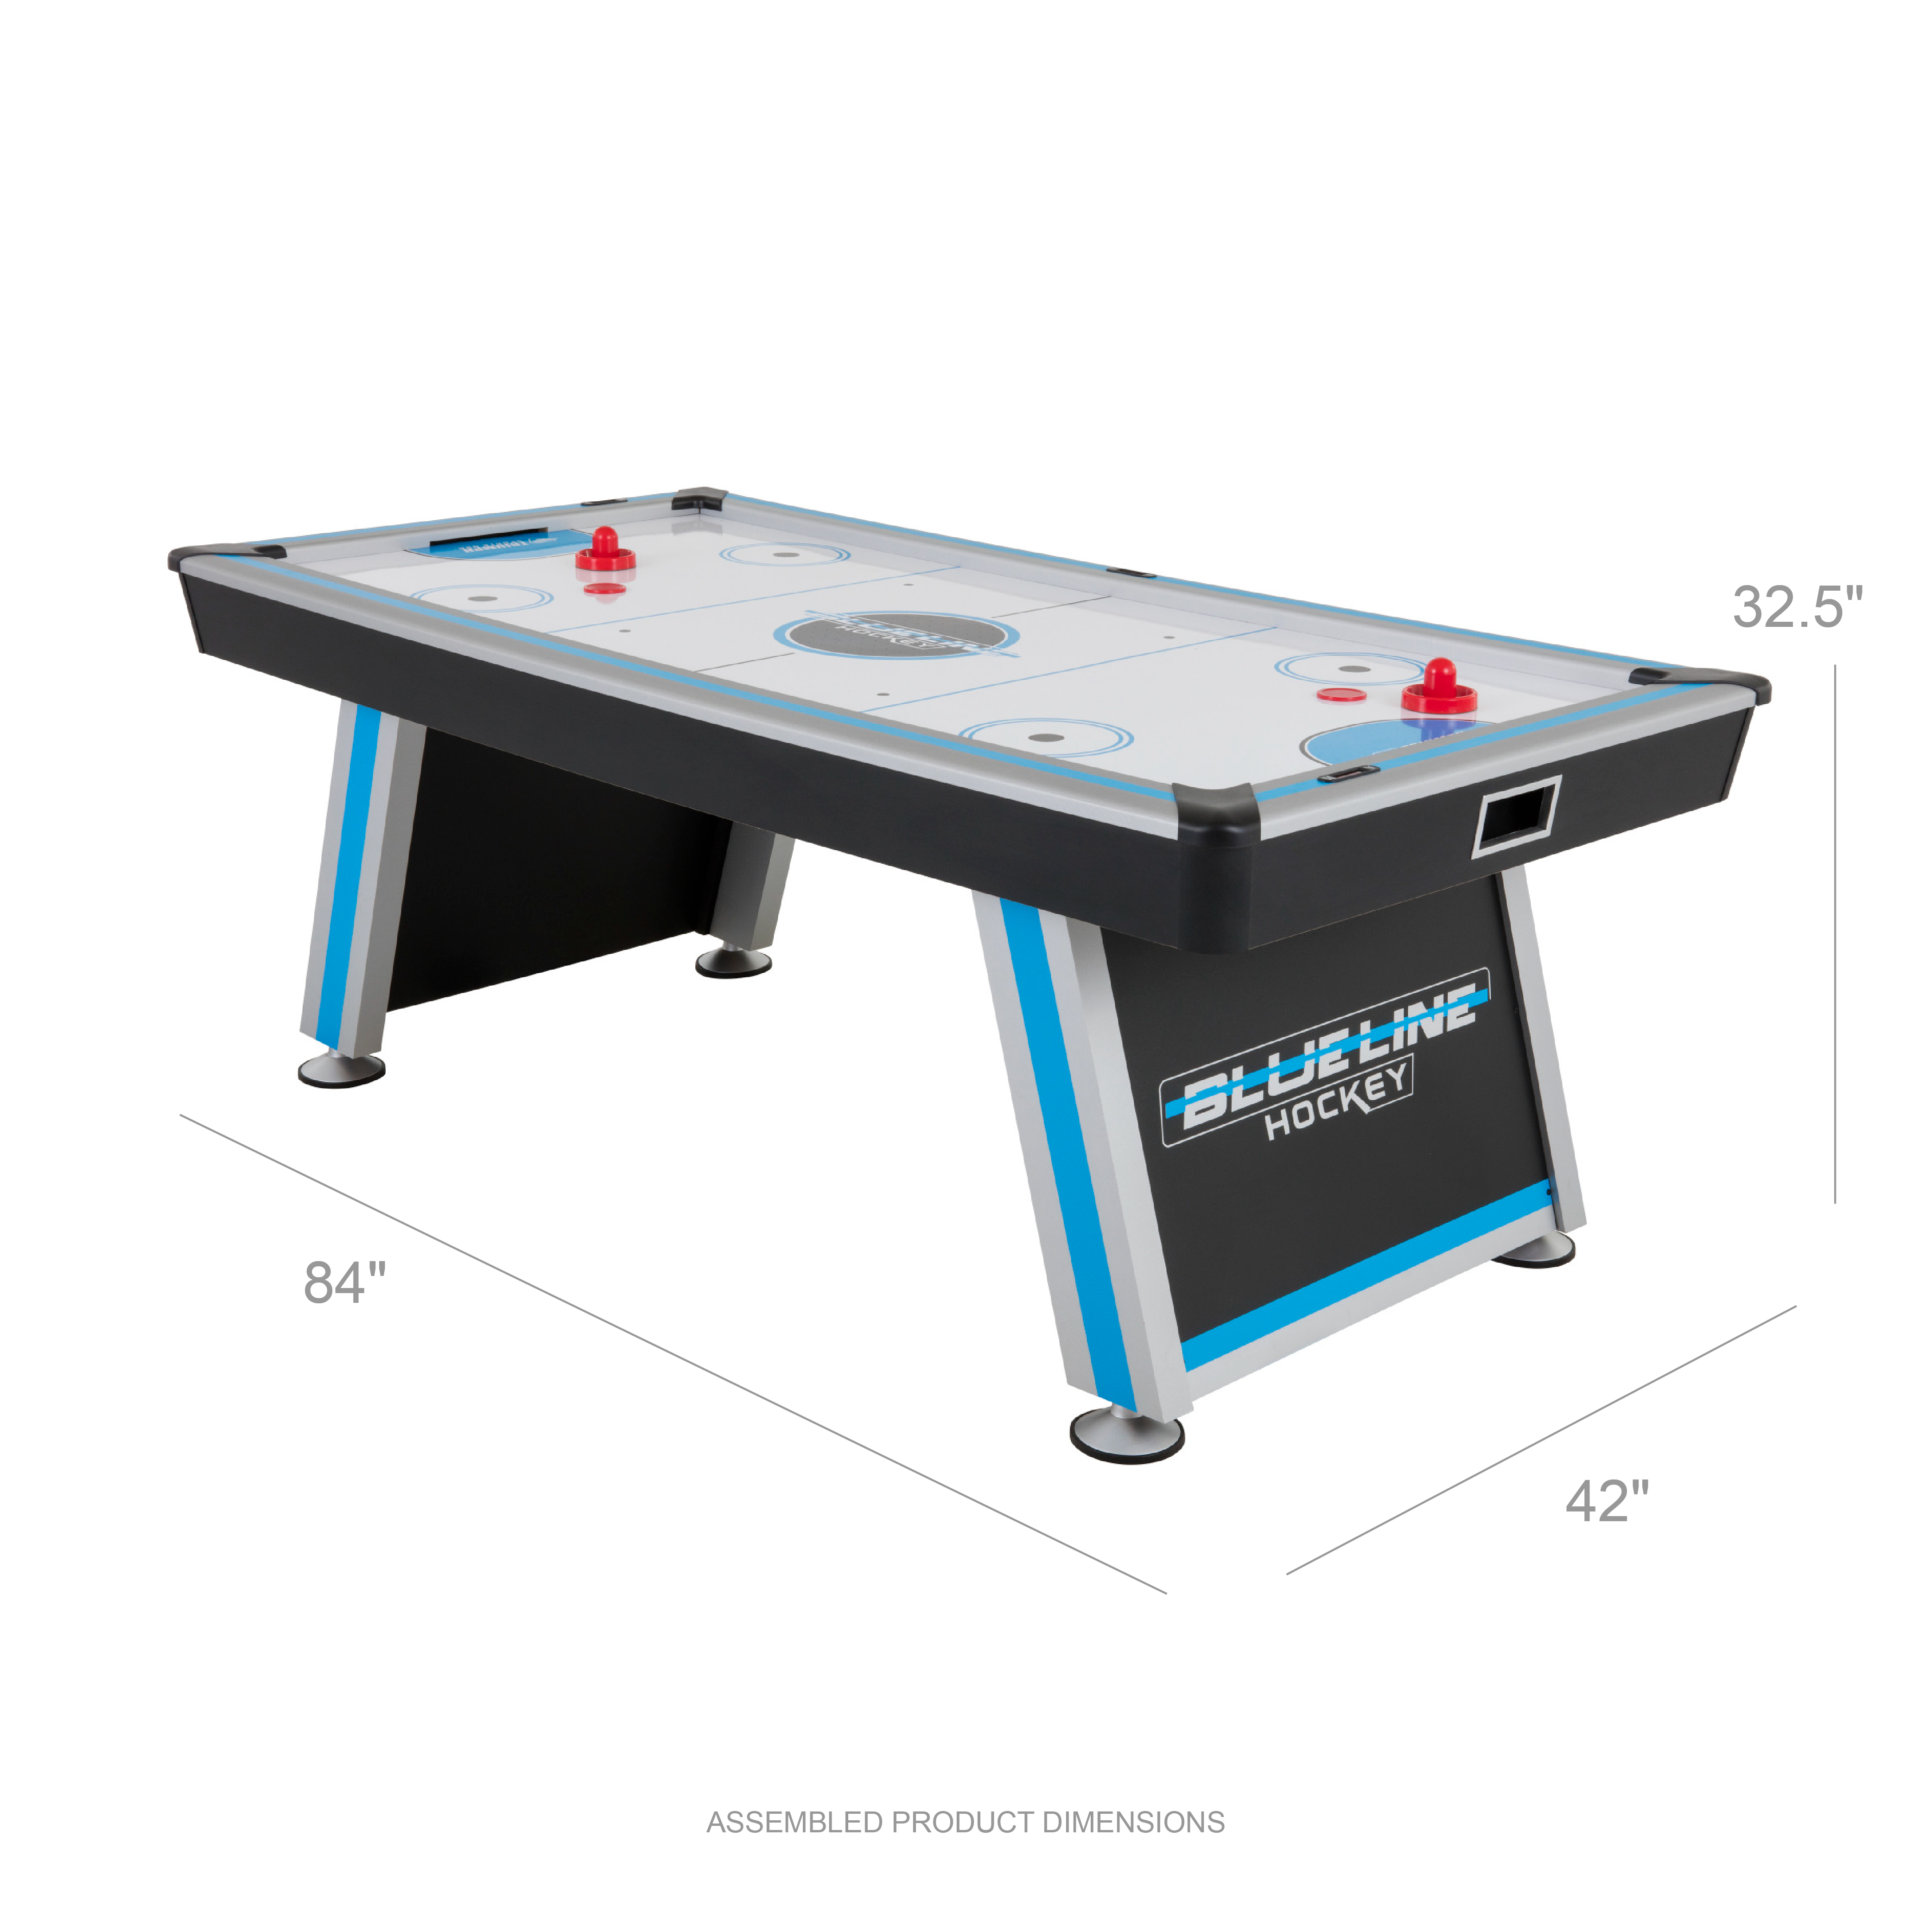 Triumph Blue Line 7 Air Powered Hockey Table With 100v Motor And